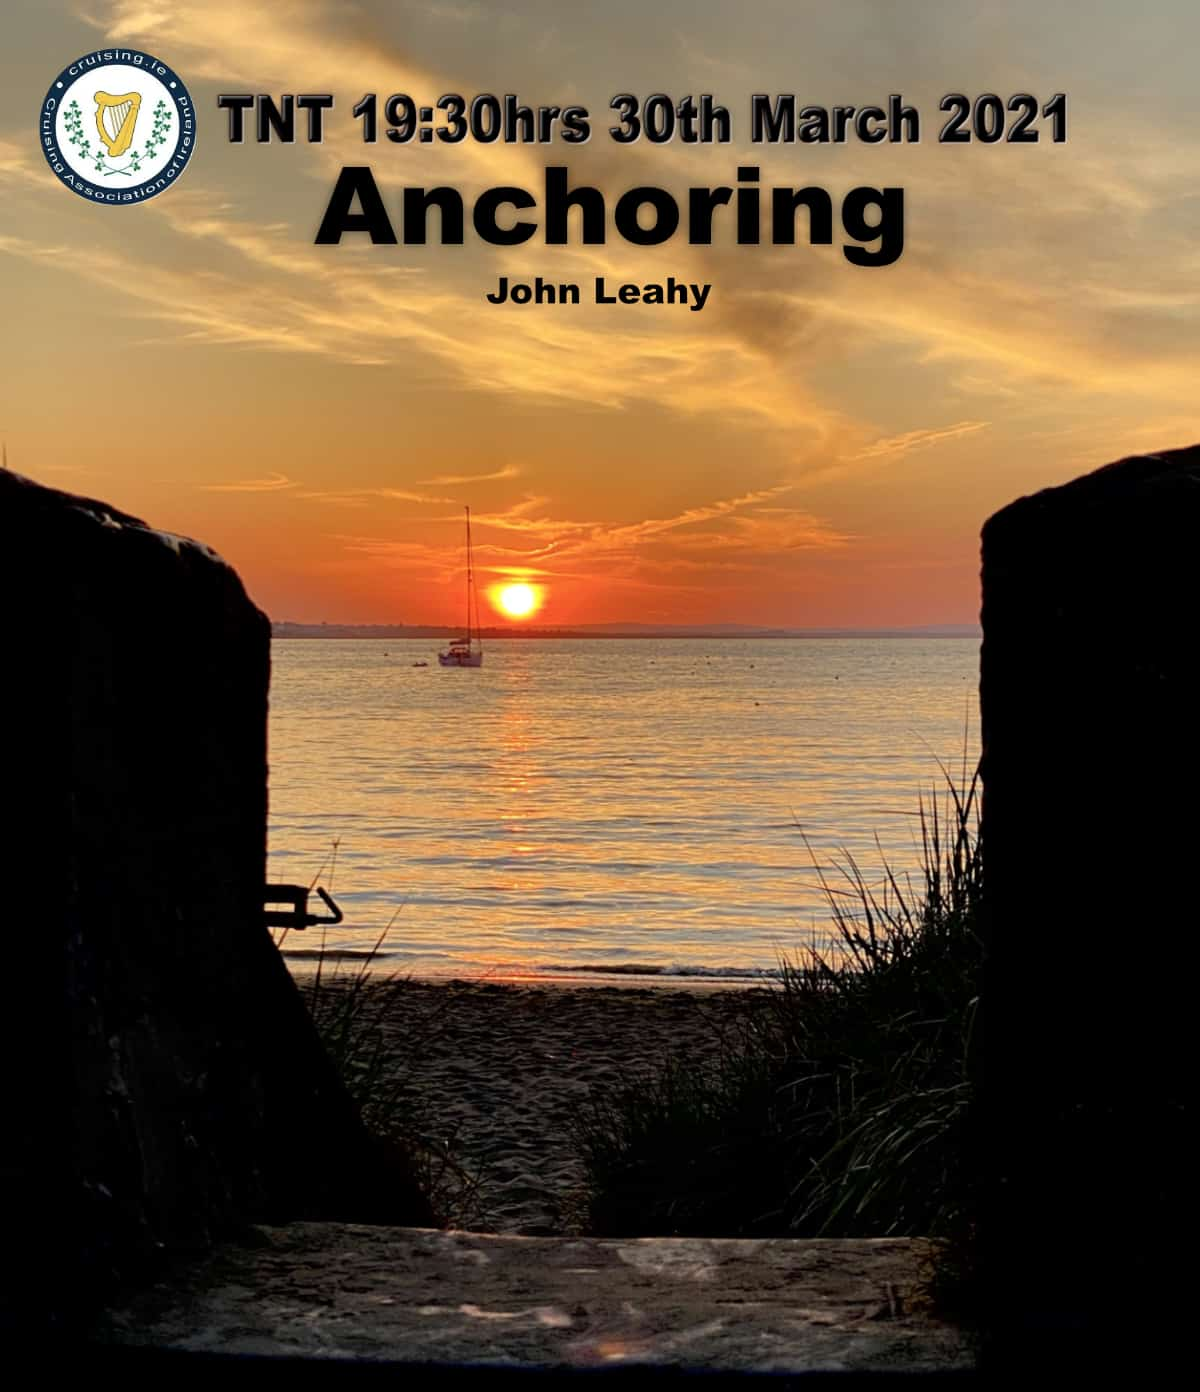 Anchoring by John Leahy